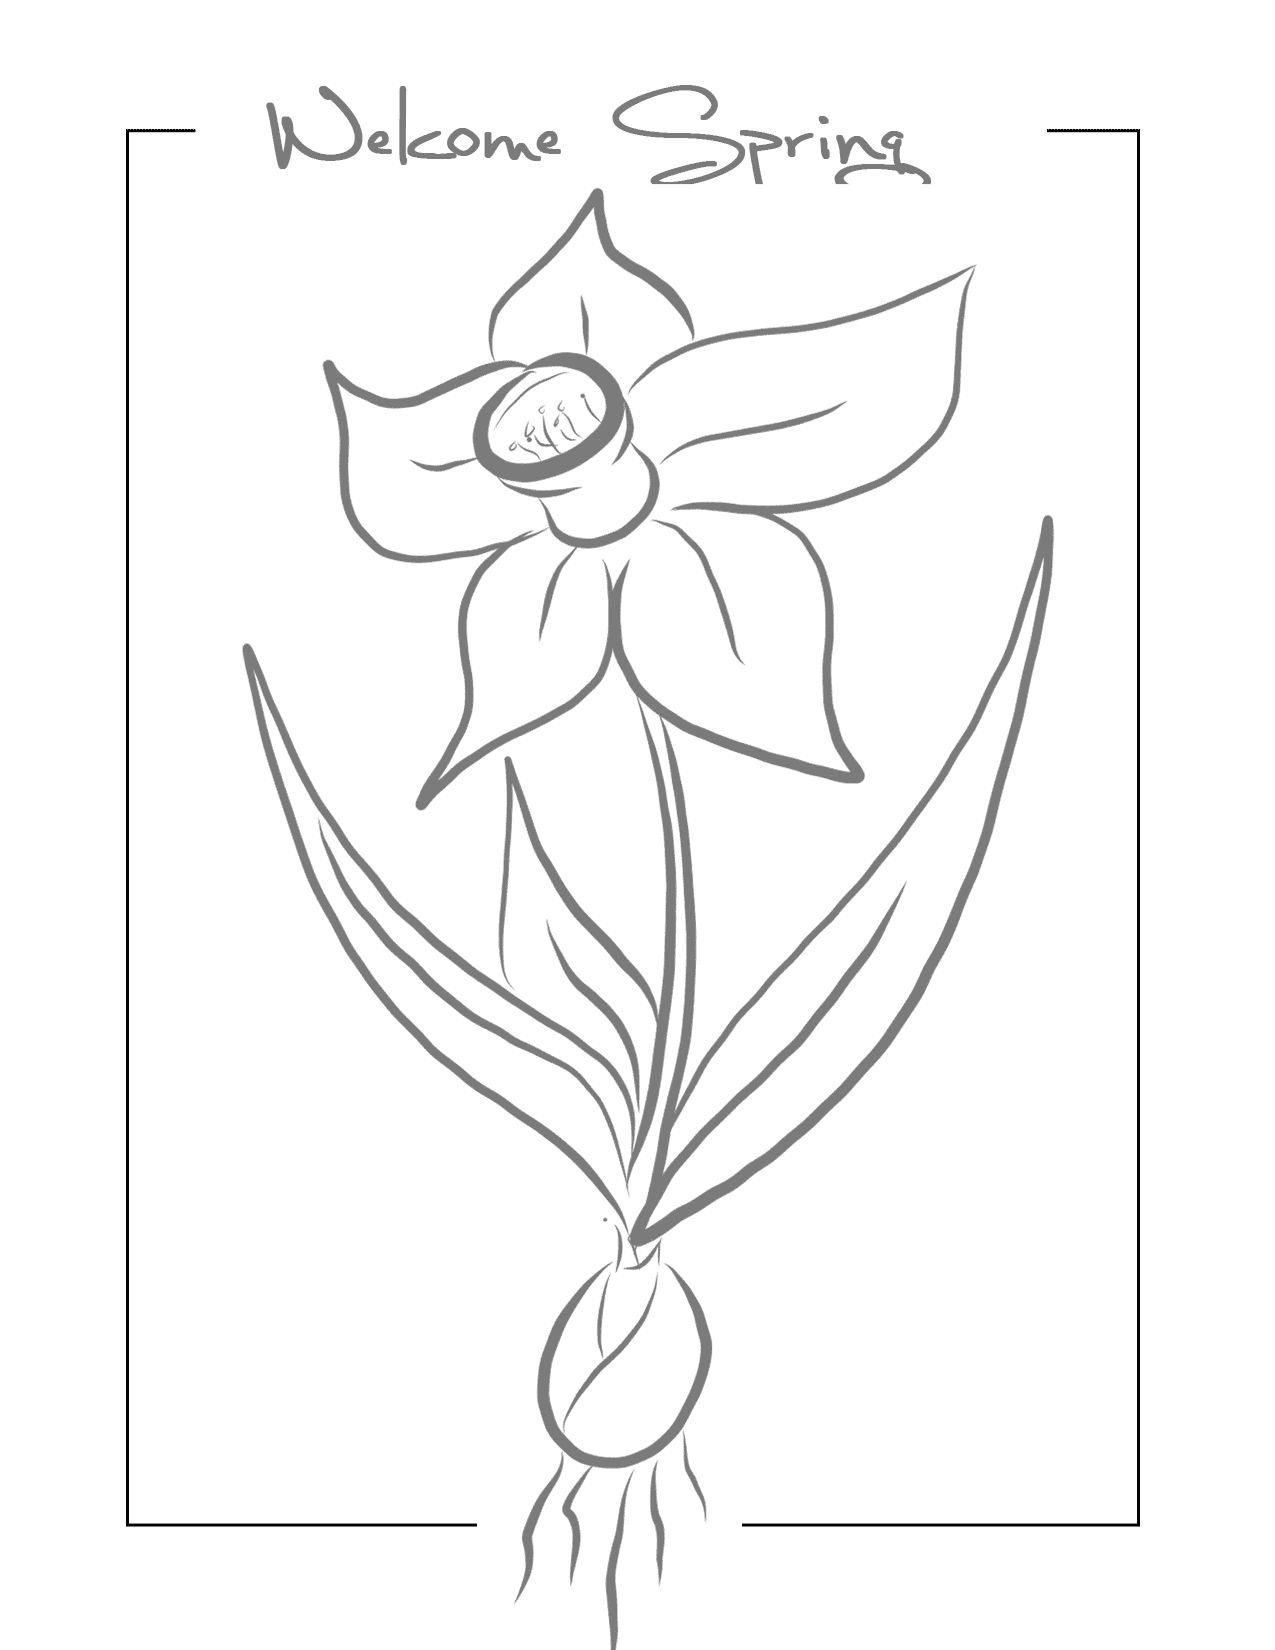 Welcome Spring Traceble Daffodil Coloring Page